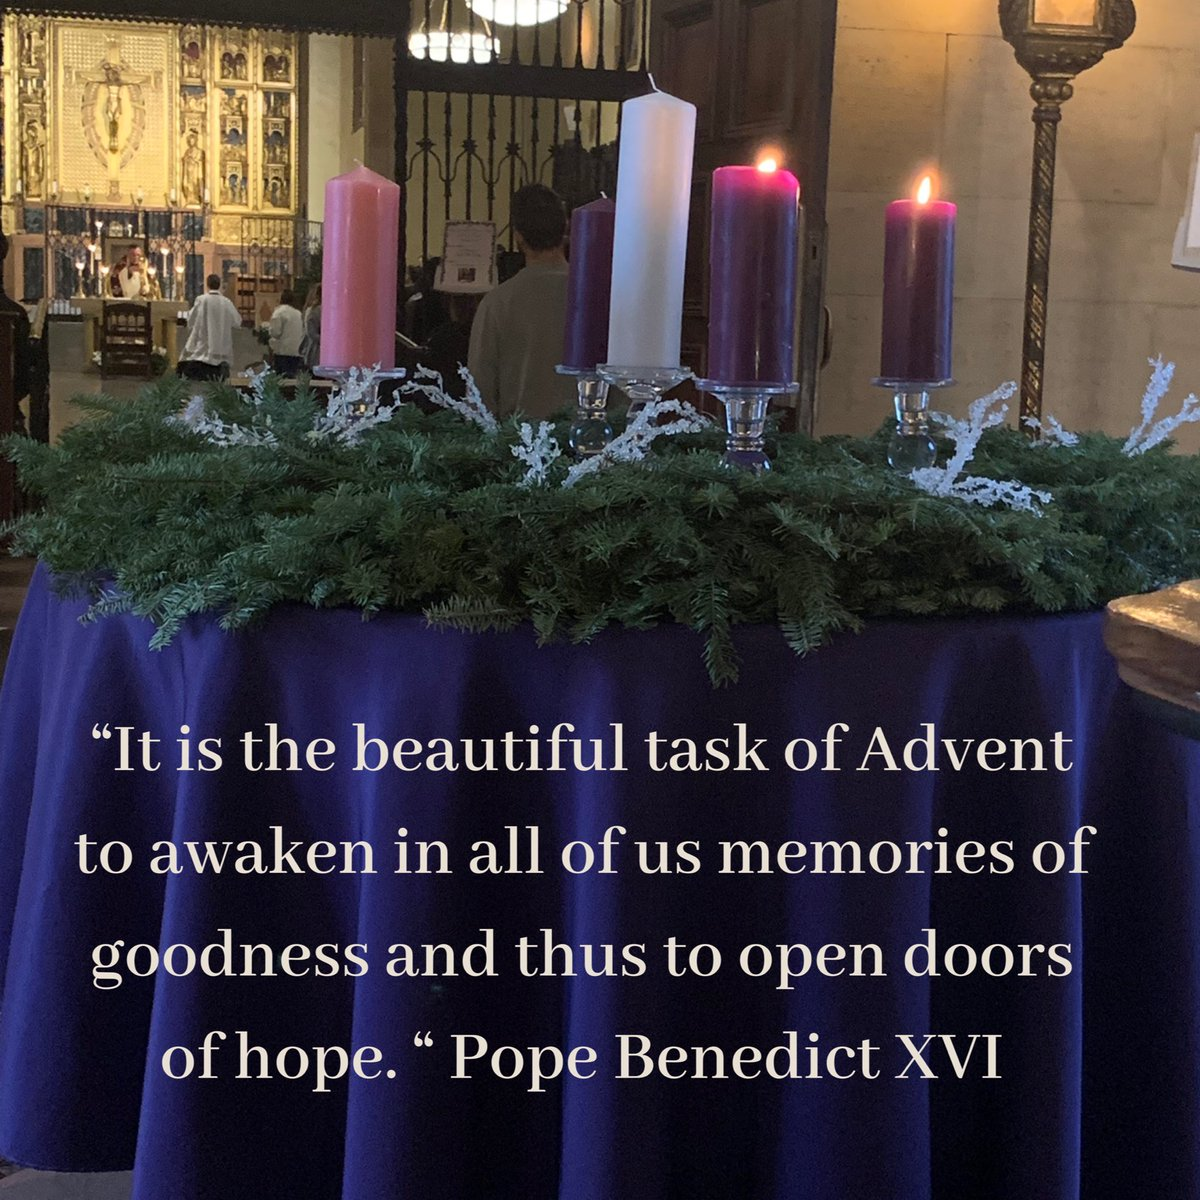 How is your Advent going? In the midst of holiday shopping and celebrations remember to take time to reflect on the real reason for season. #thinkingpriesthood pic.twitter.com/Cu8RYxQLVW